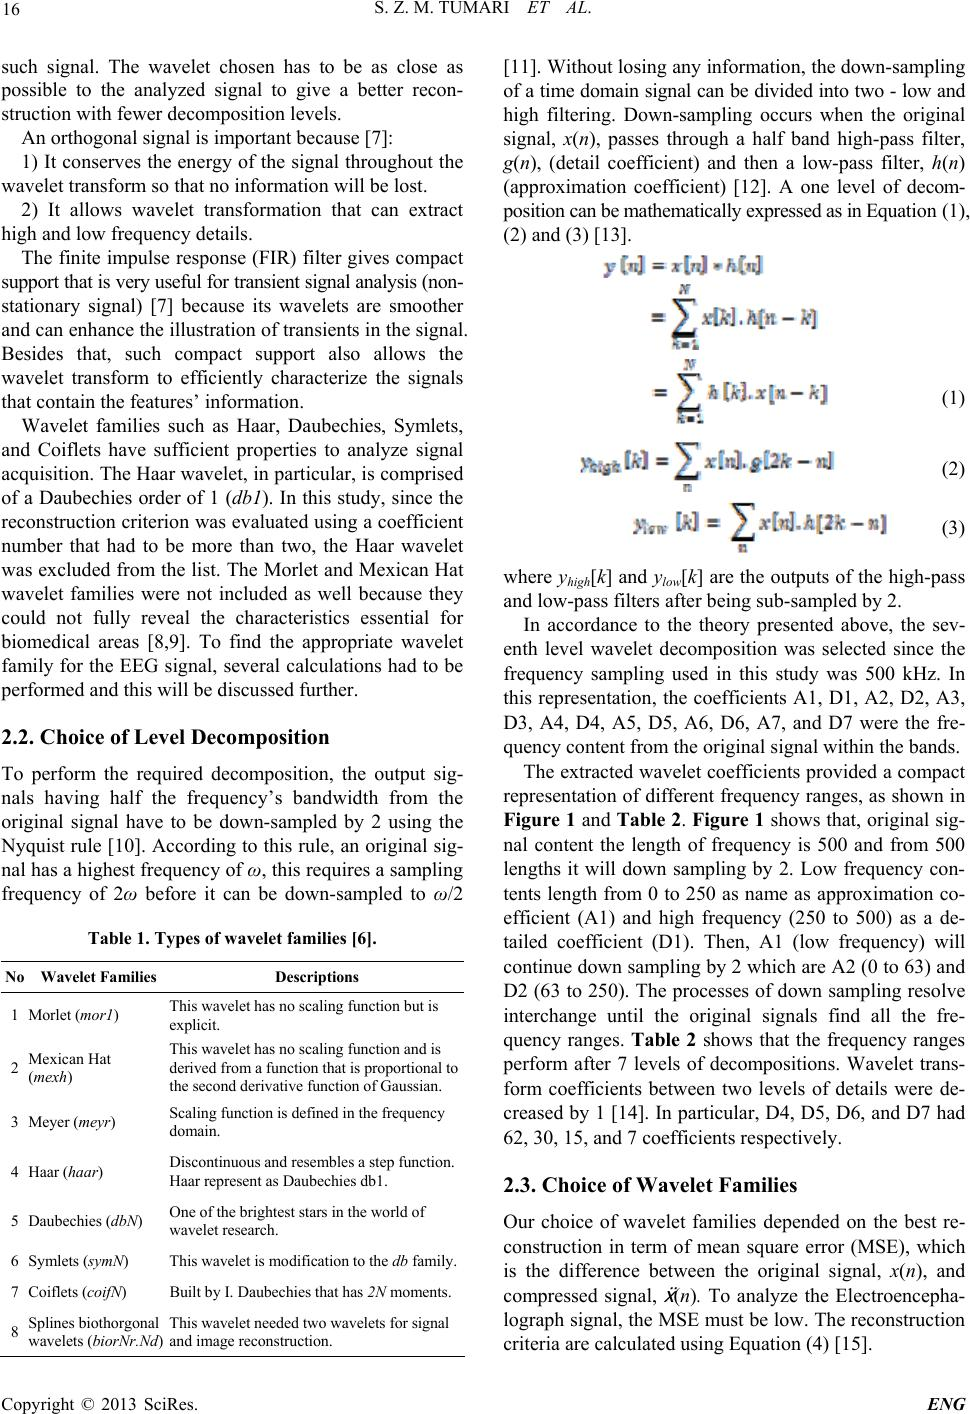 Selection of a Suitable Wavelet for Cognitive Memory Using